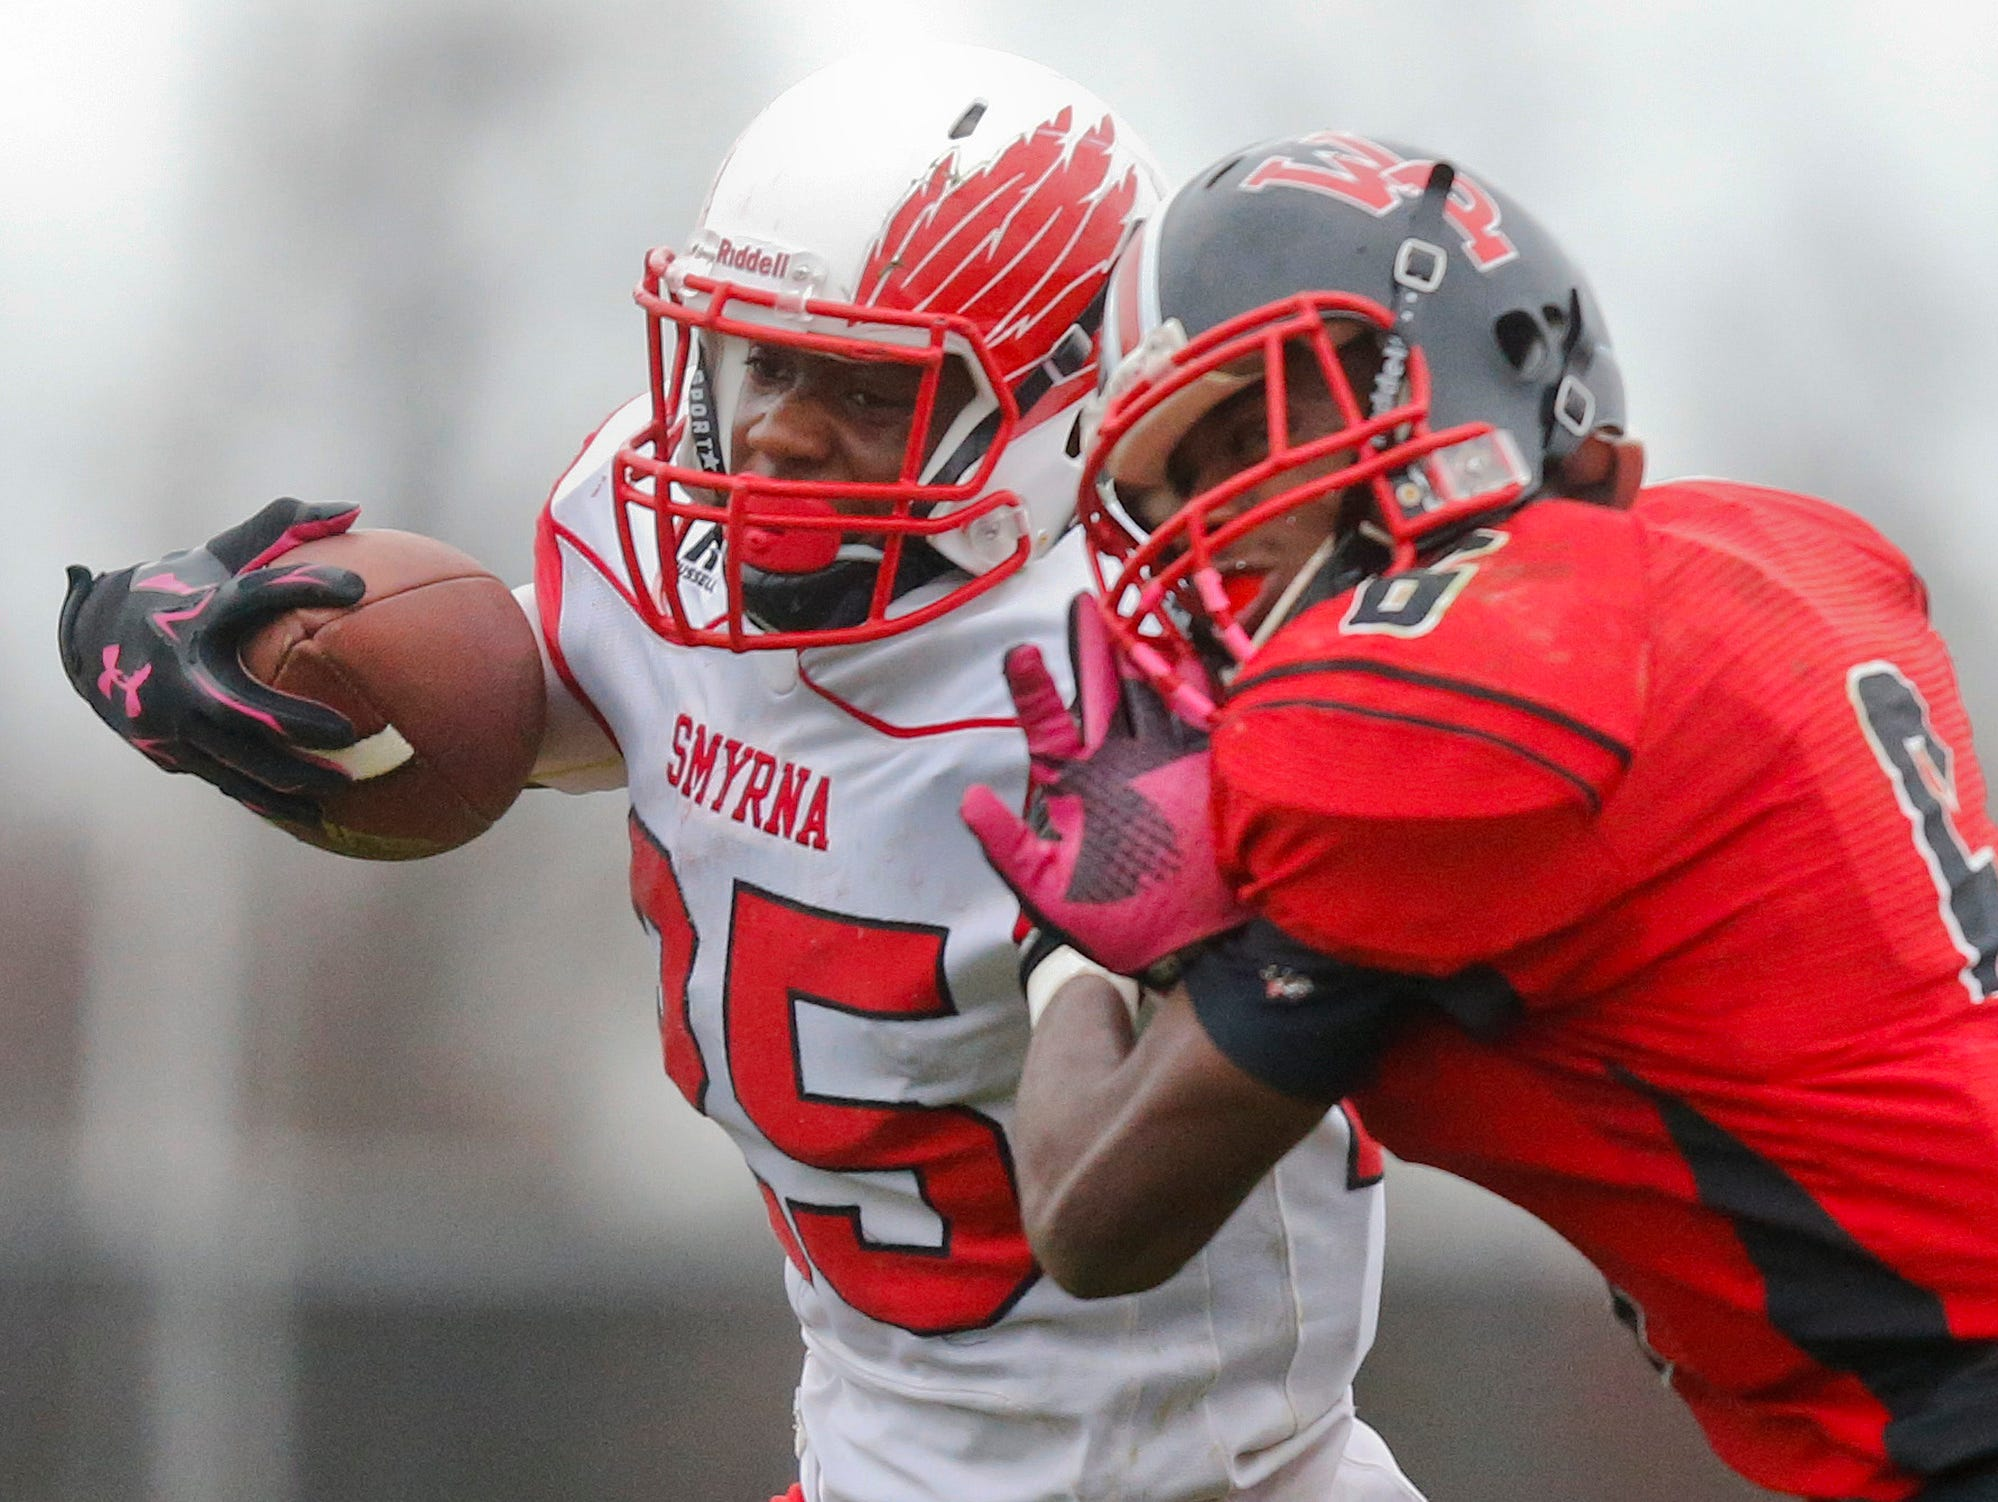 Smyrna's William Knight tries to get past William Penn's Kamau Floyd on a fourth quarter scoring drive during Smyrna's 30-13 win in a semifinal of the DIAA Division I state tournament at Bill Cole Stadium Saturday.